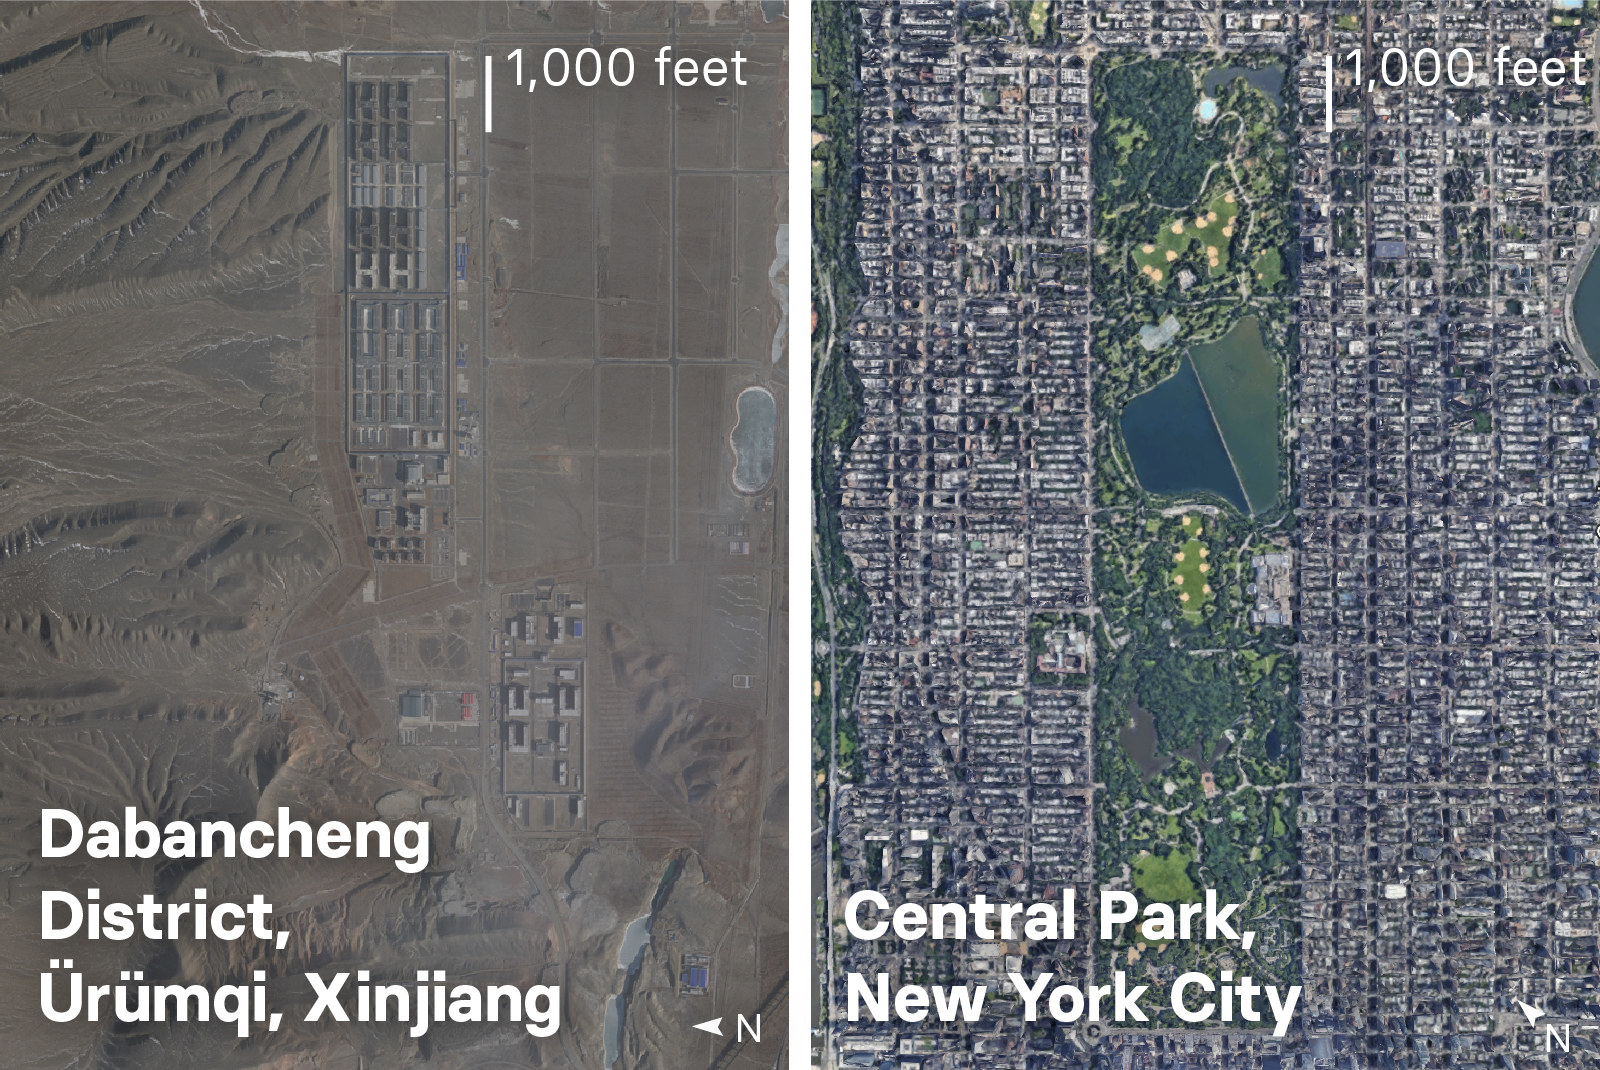 One of the facilities in Dabancheng appears to be about half the size of Central Park in New York City